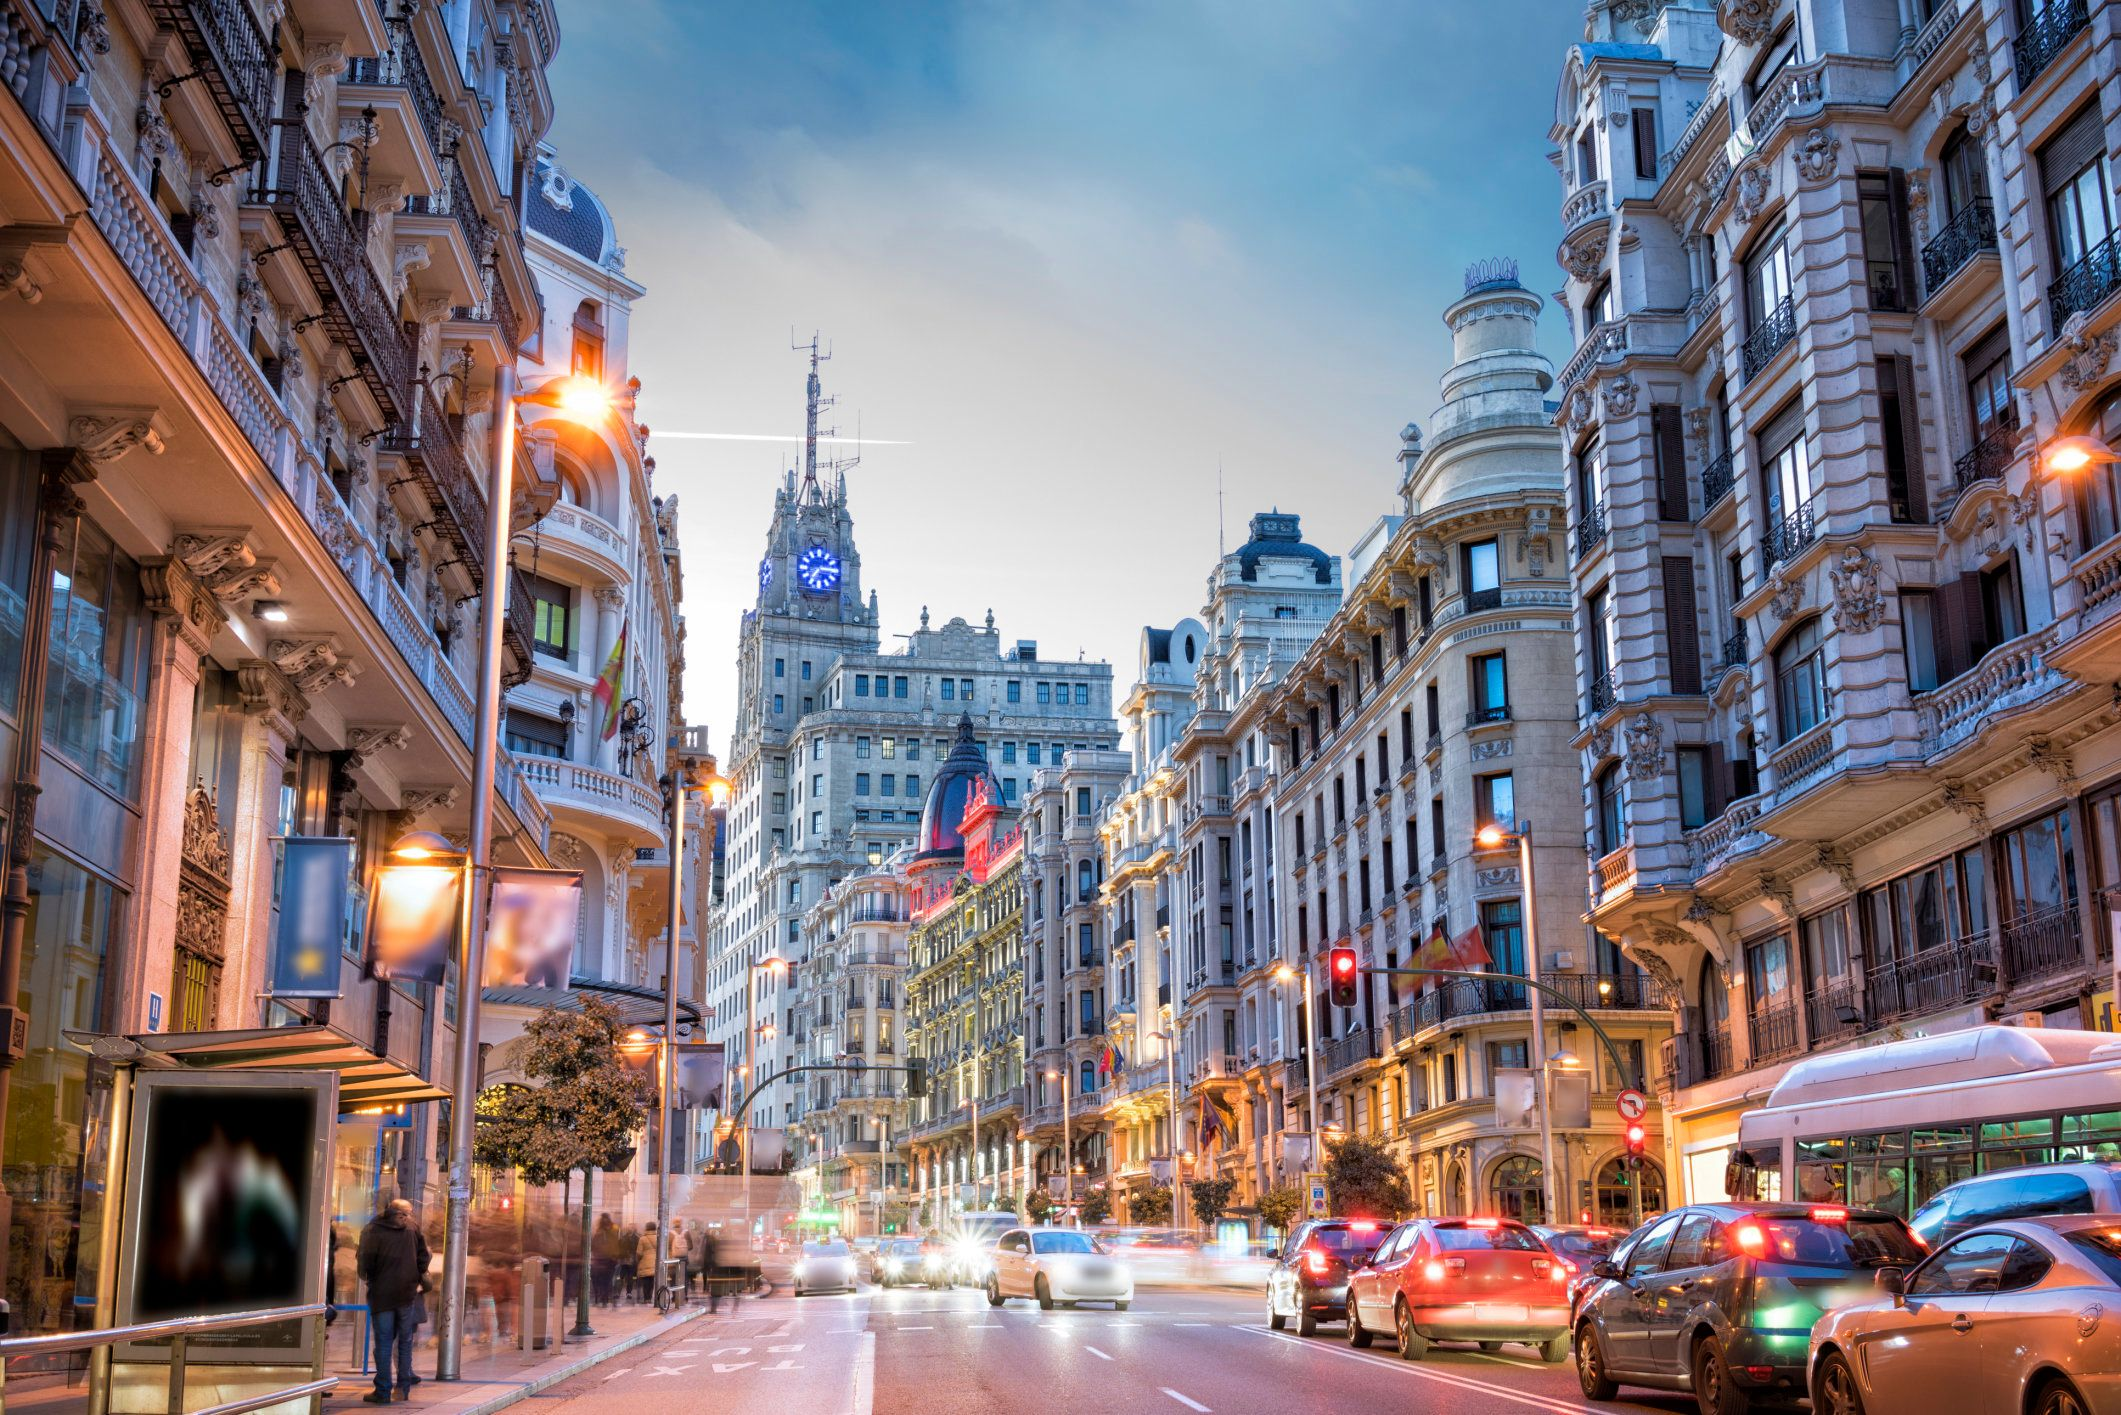 Take in the buzz of Gran Via, the epicenter of retail in Madrid.